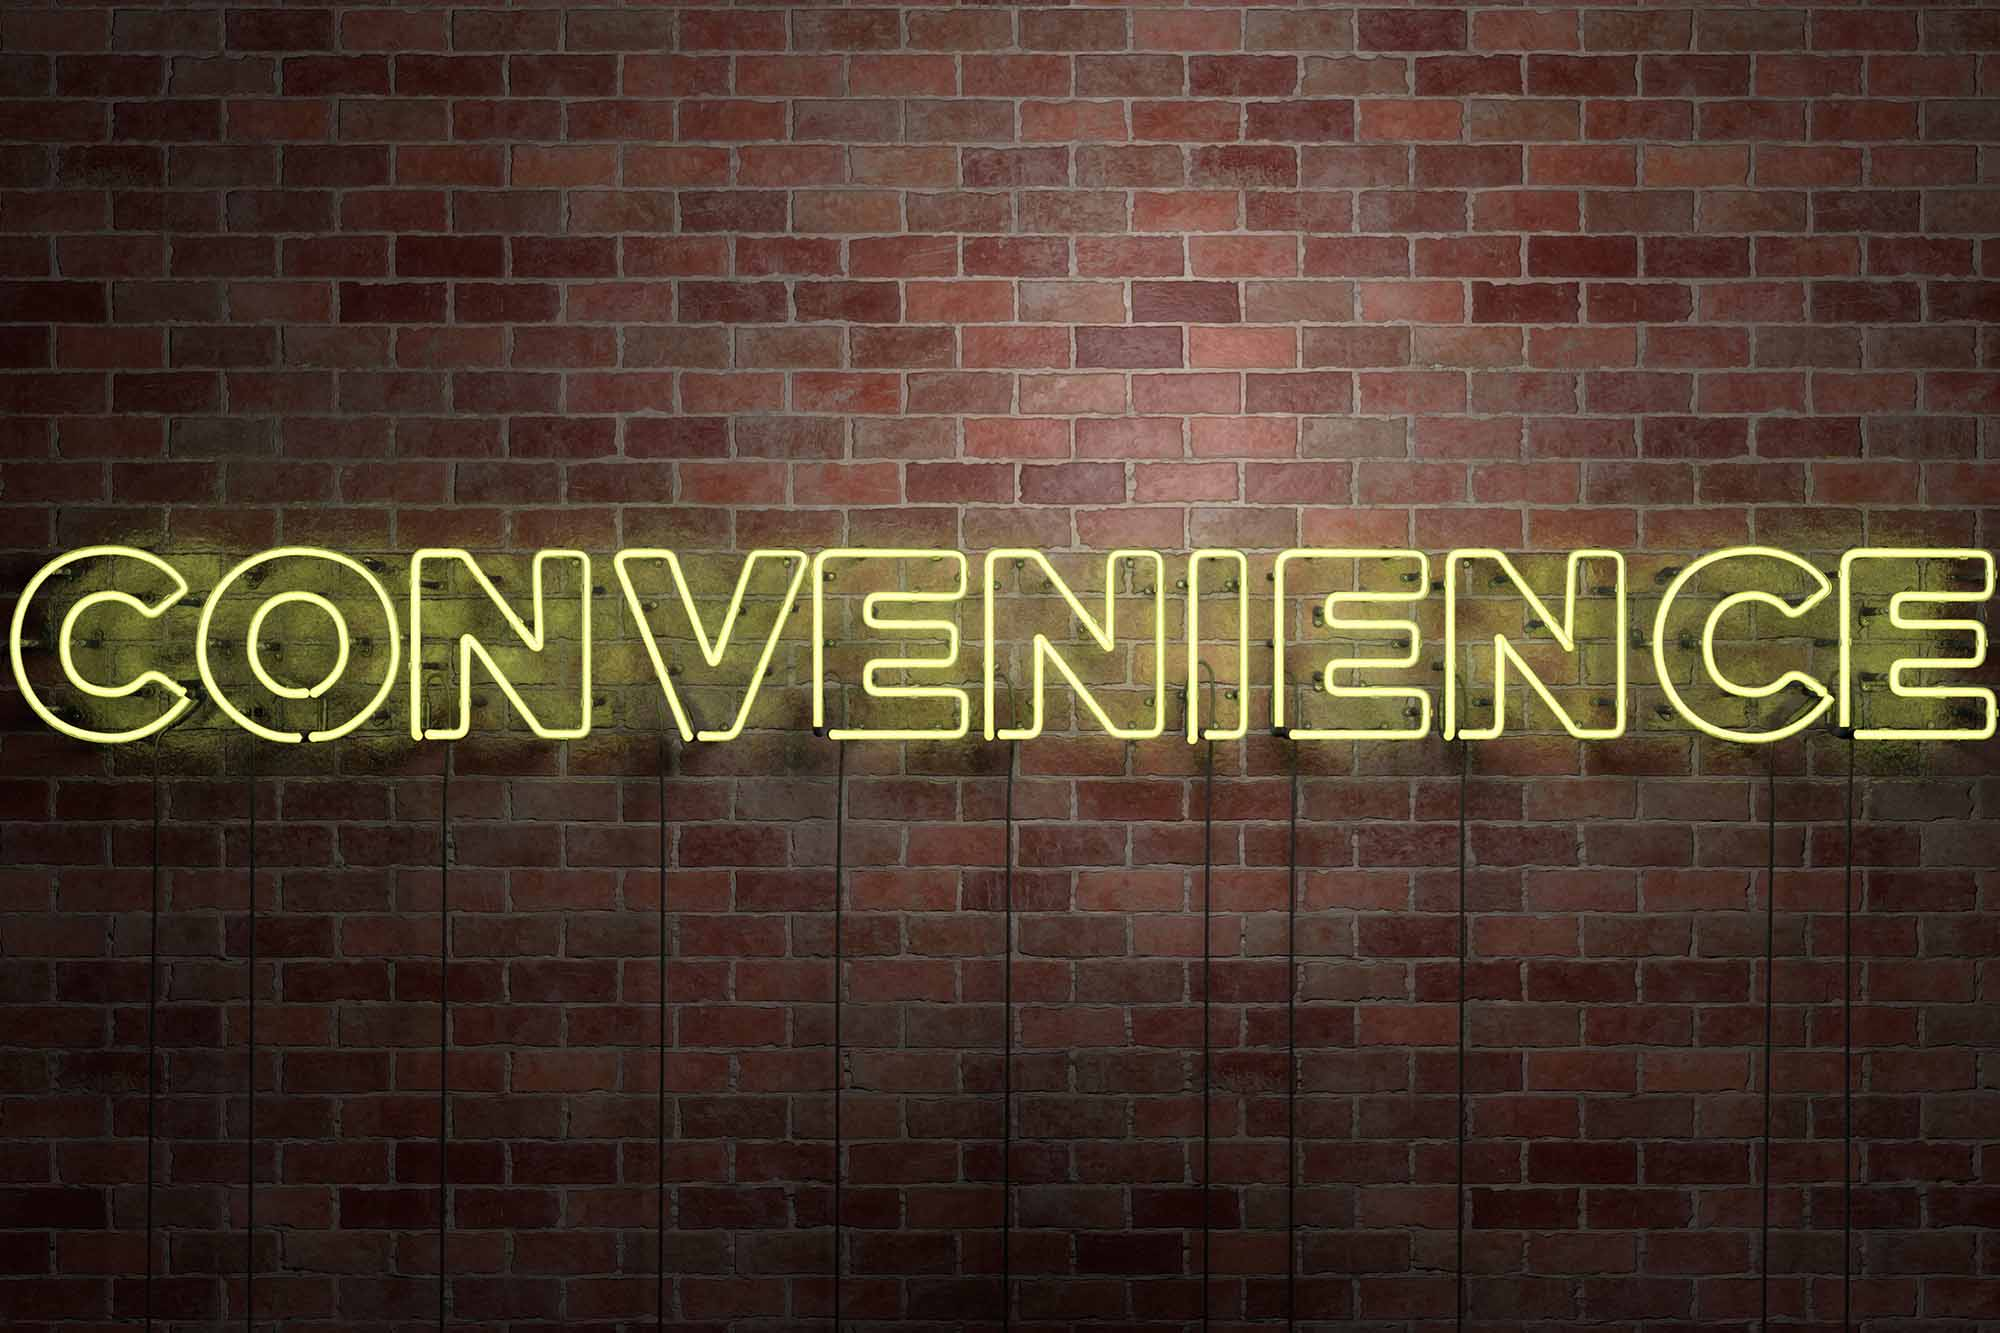 CONVENIENCE - fluorescent Neon tube Sign on brickwork